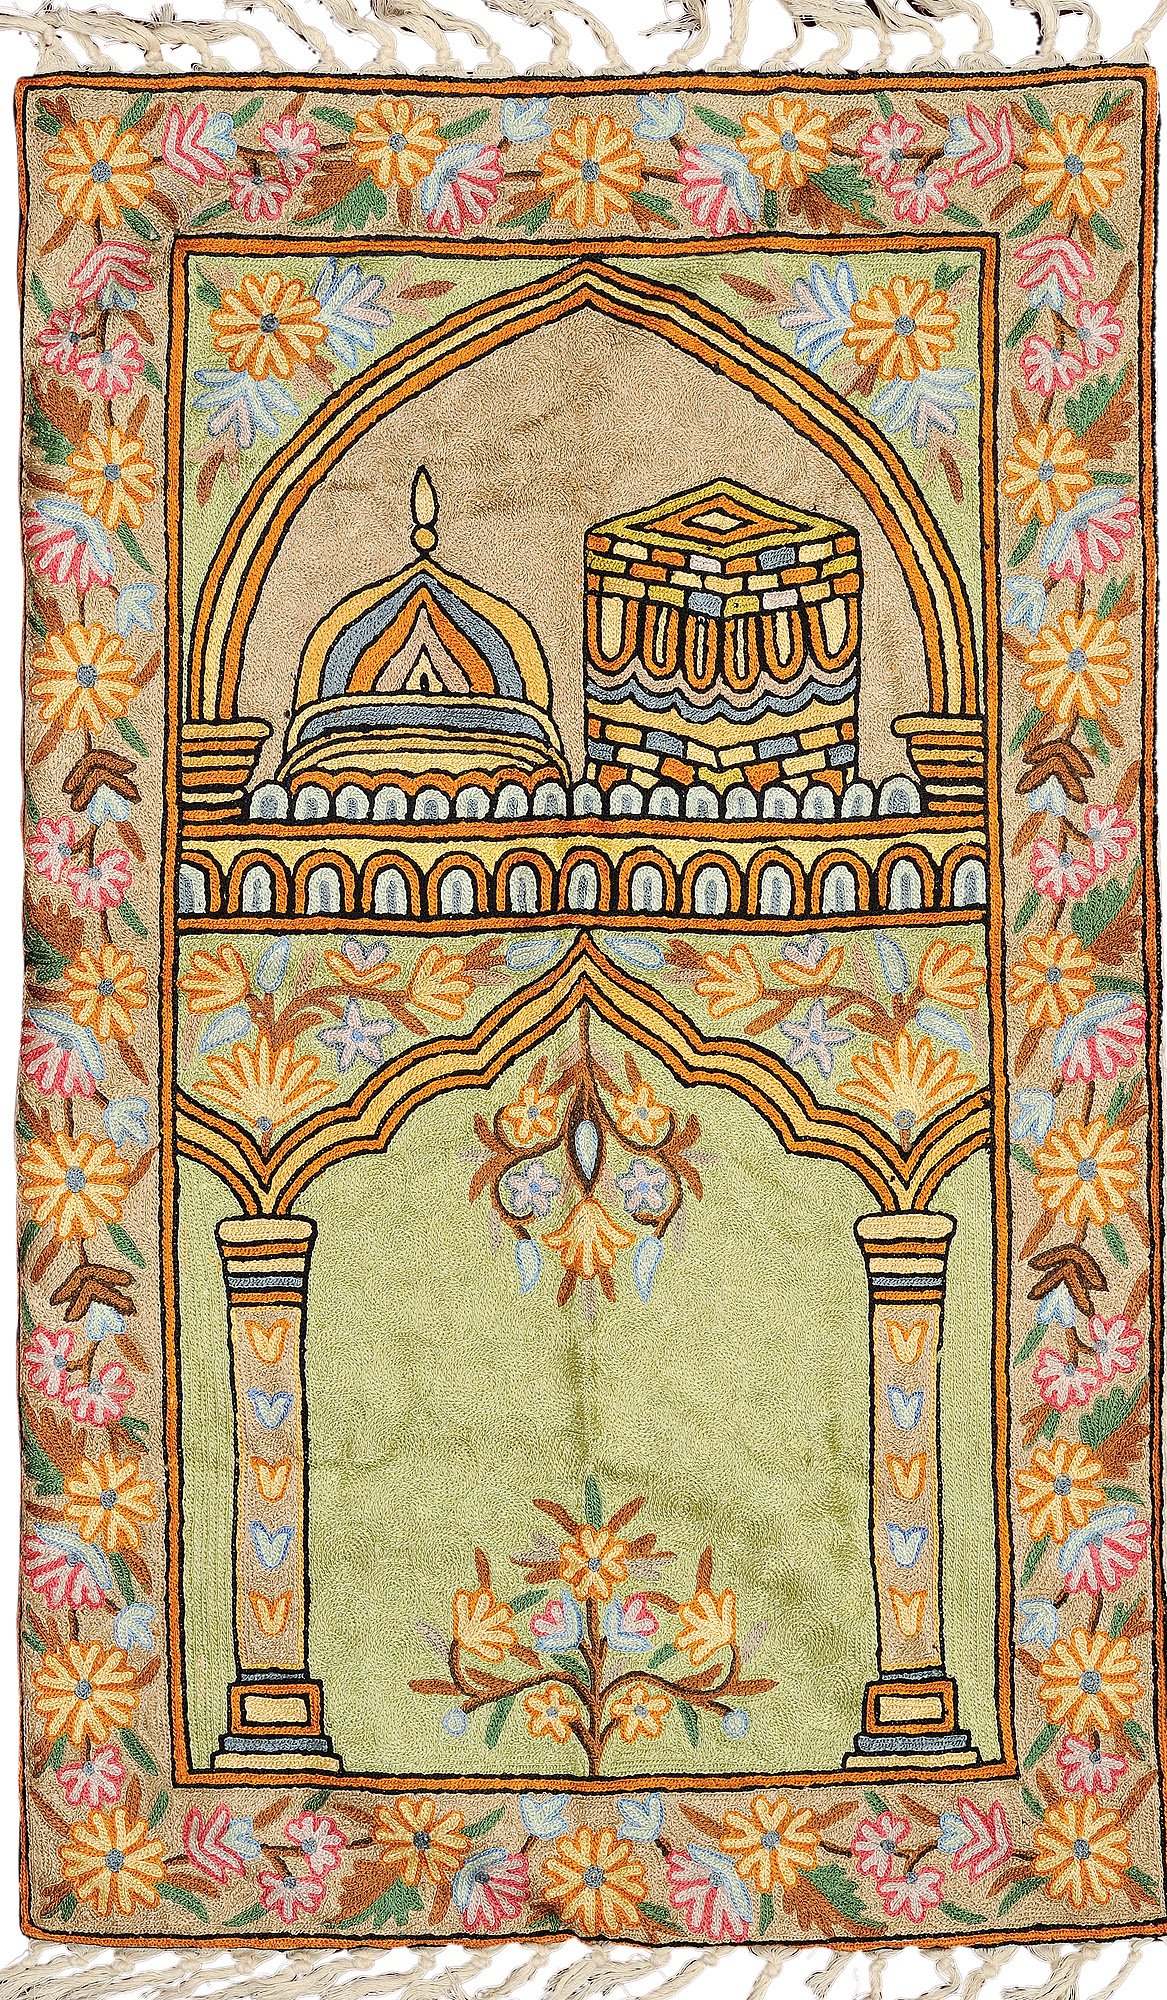 Green and Sandshell Islamic Embroidered Wall Hanging from Kashmir - Resham on Canvas